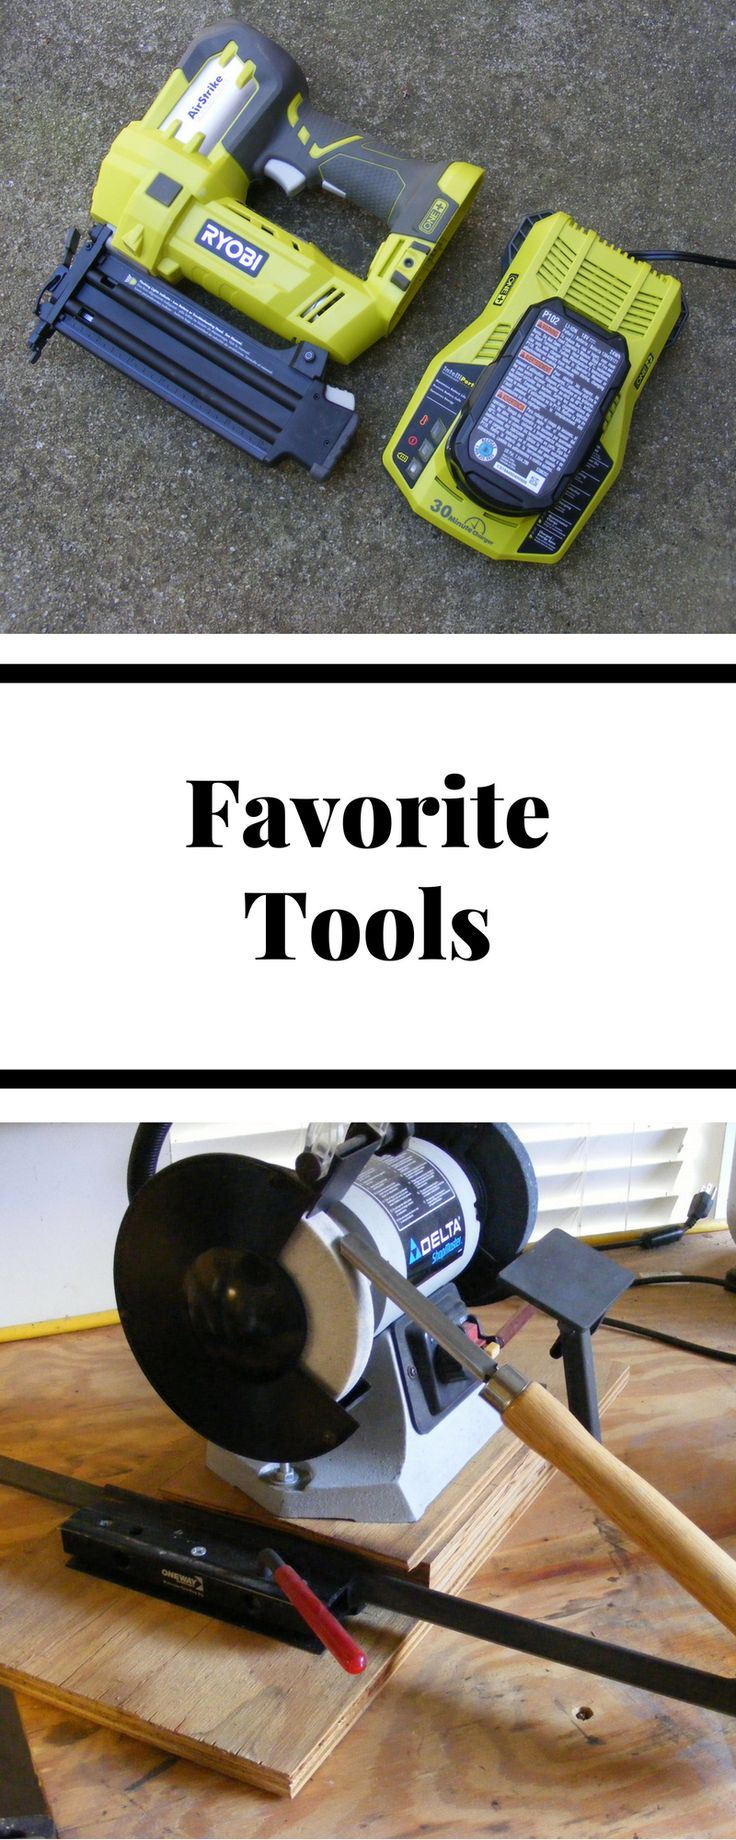 DIY Woodworking Ideas A list of my favorite woodworking tools. I use these over and over on many woodw...